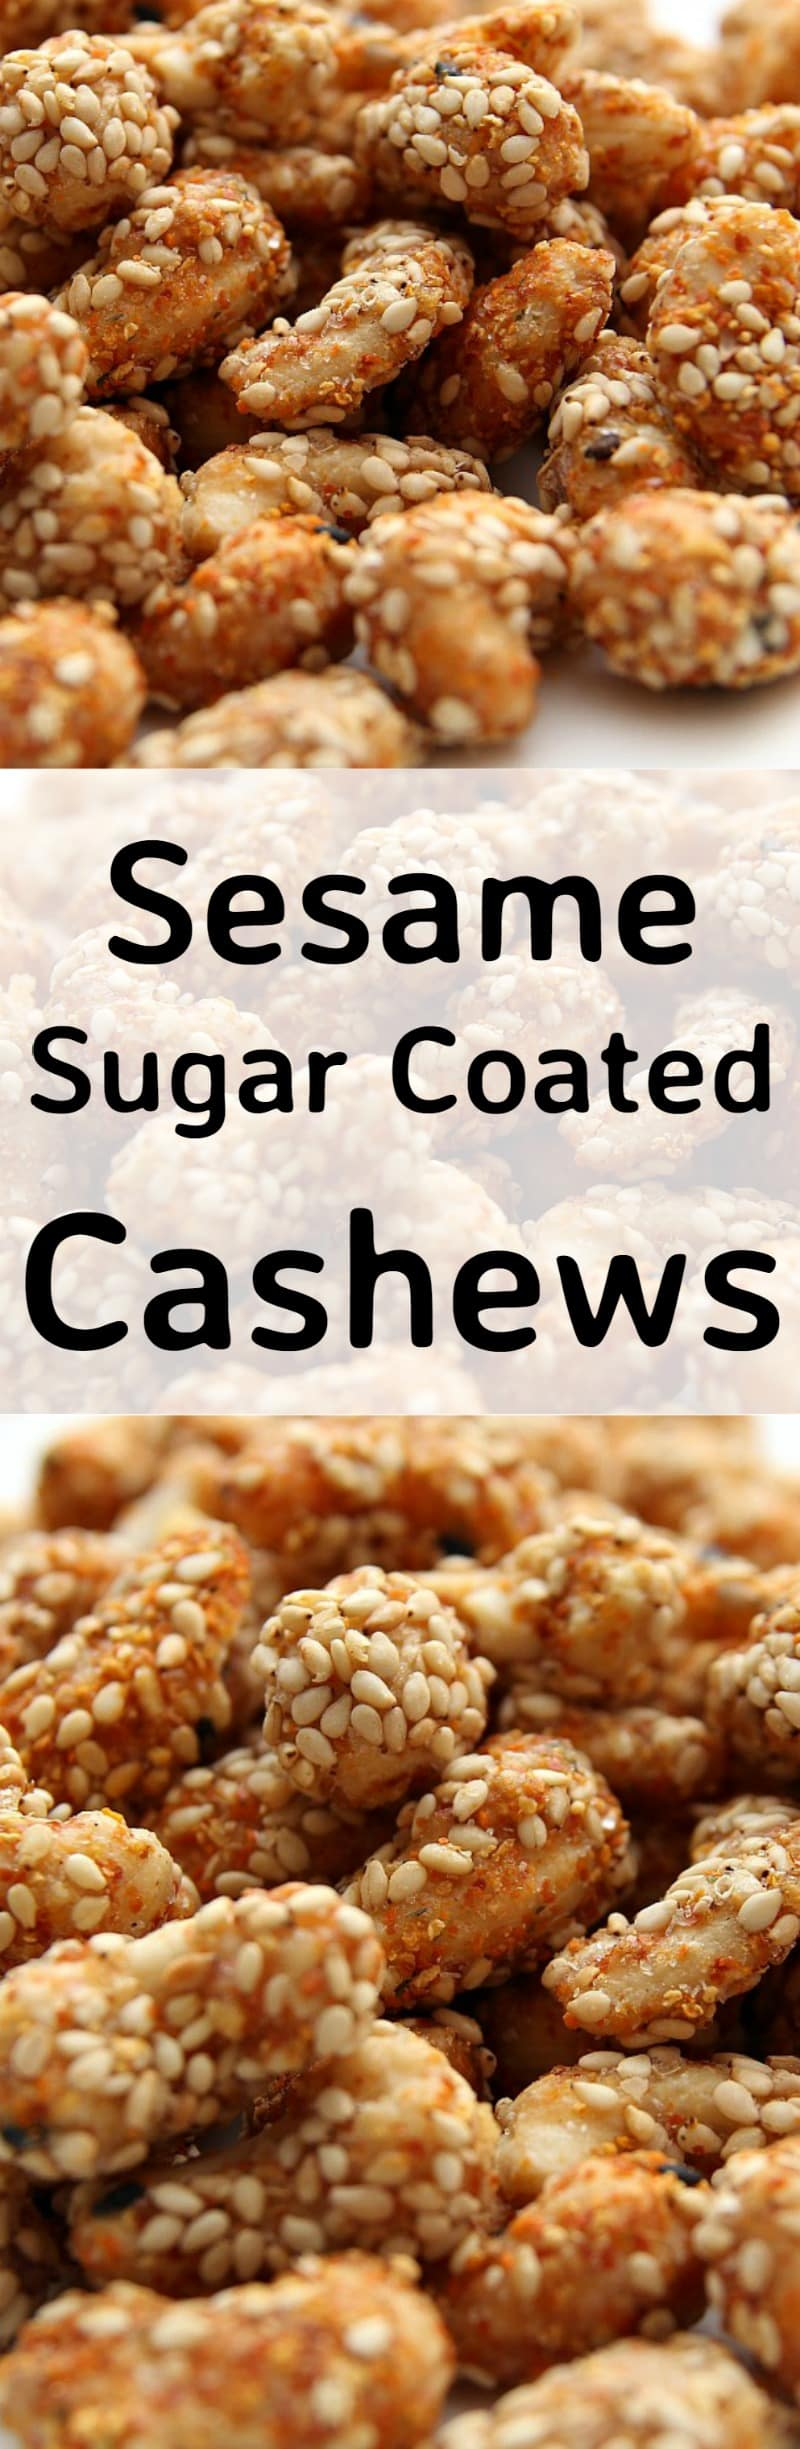 Sesame Sugar Coated Cashews. These are delicious served warm! The sugar coating along with the sesame and other spices makes for a lovely flavor. Recipe also has other flavor suggestions for you to try so make up a batch soon!  #Christmas #snacks #partyfood